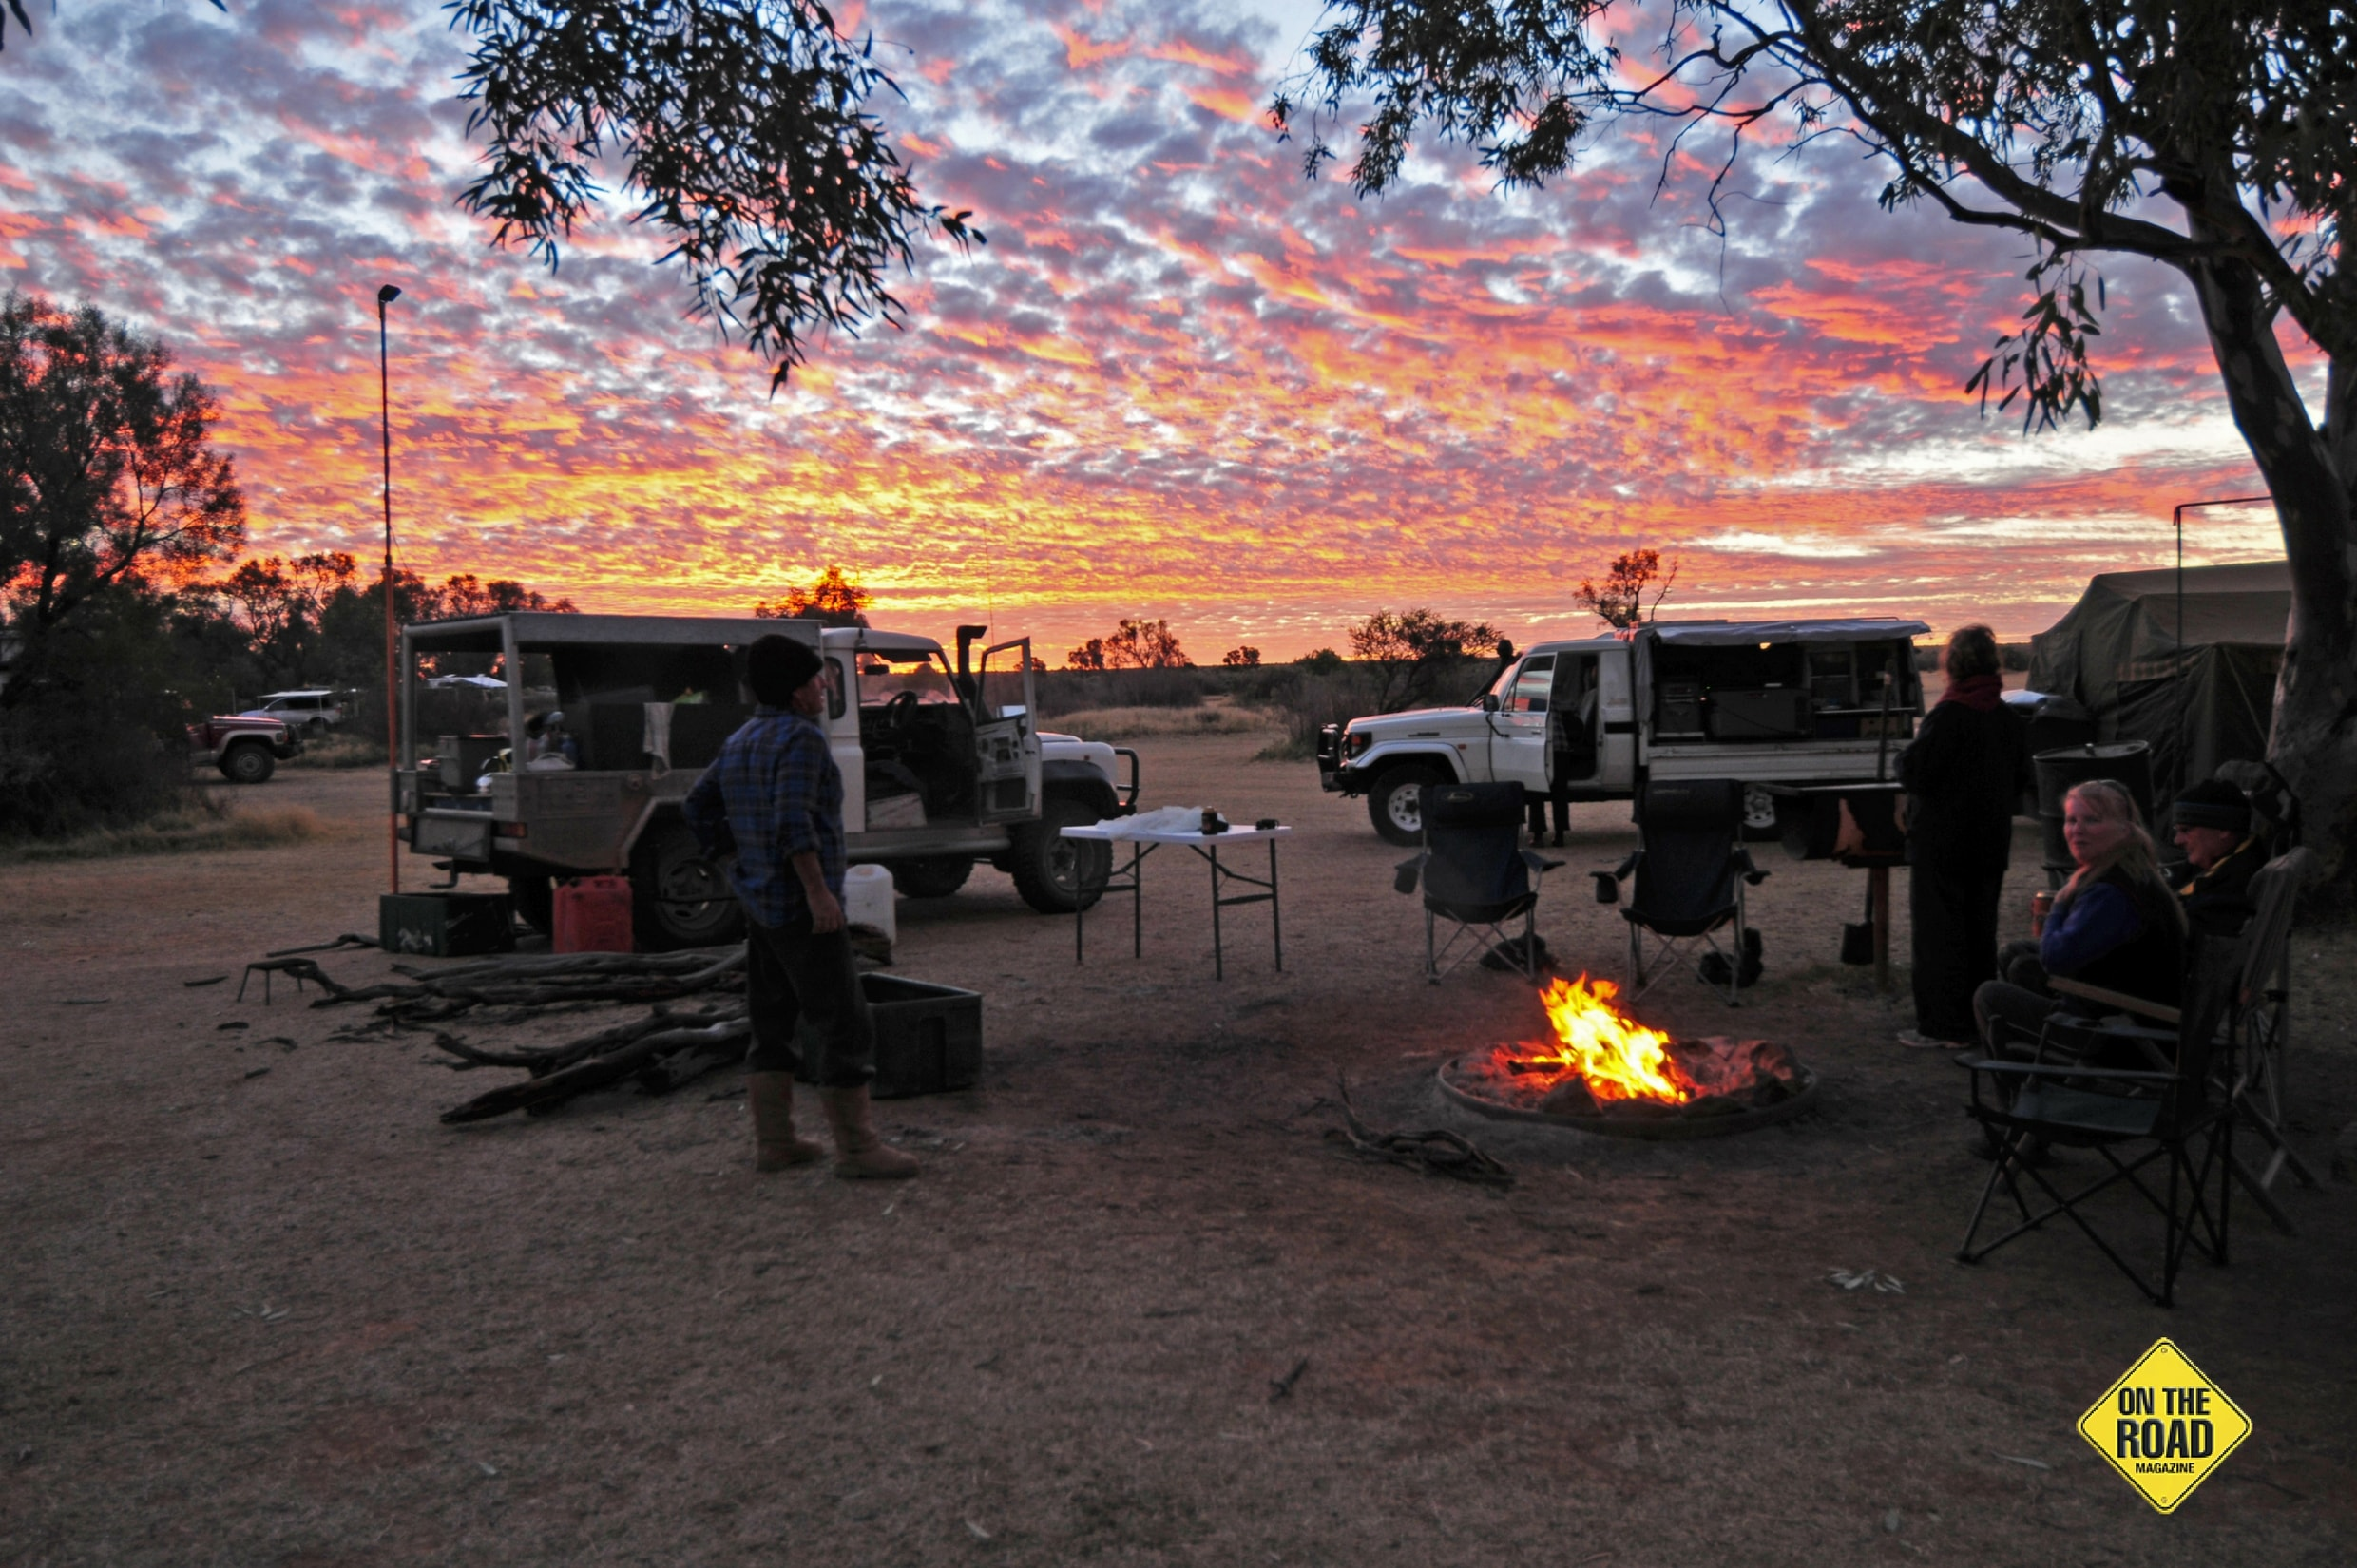 Sunset over the Farina campground